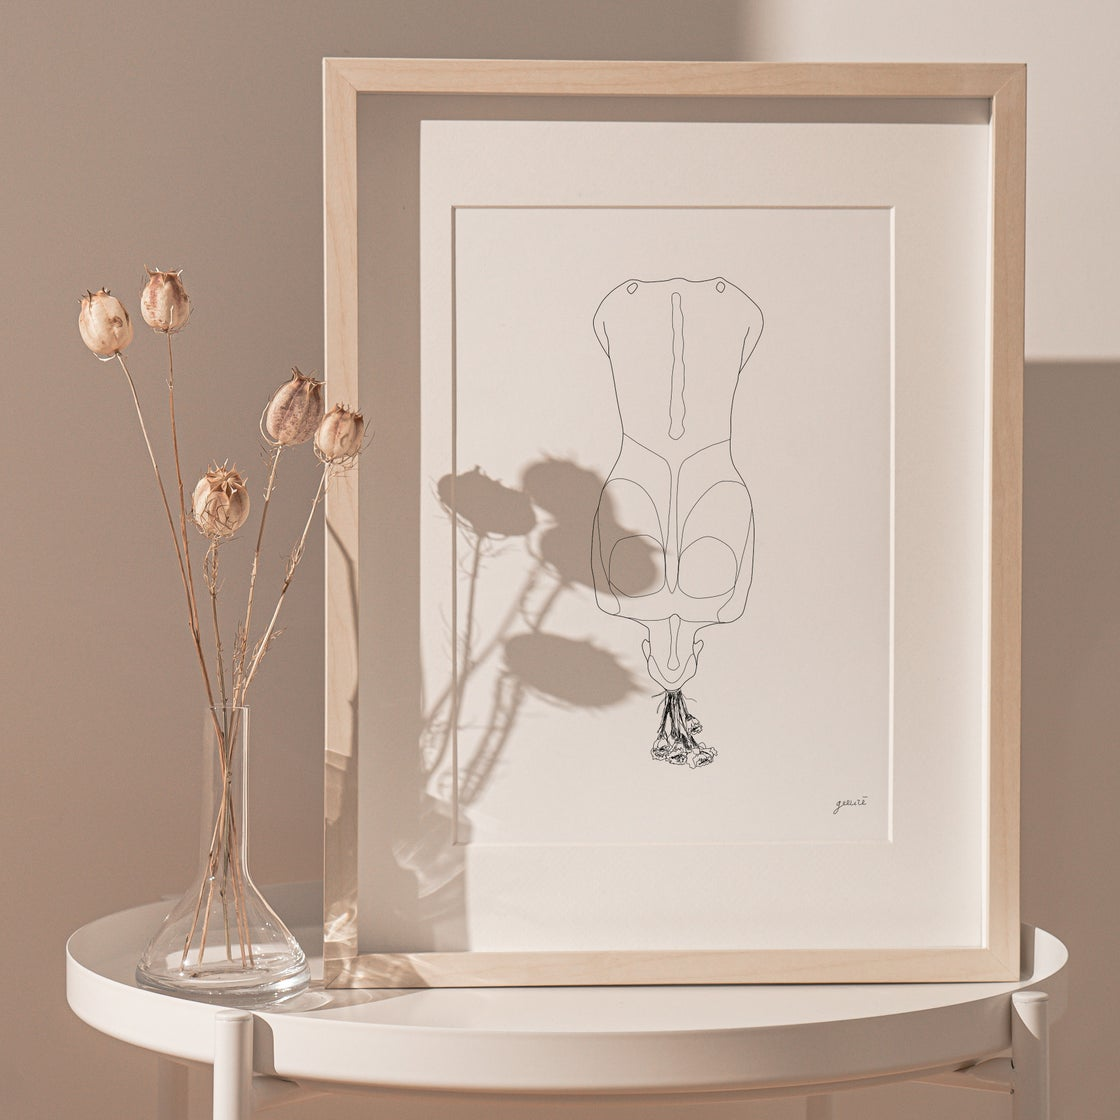 Image of 'HOLD ME UP WHEN I AM ABOUT TO FALL' PRINT